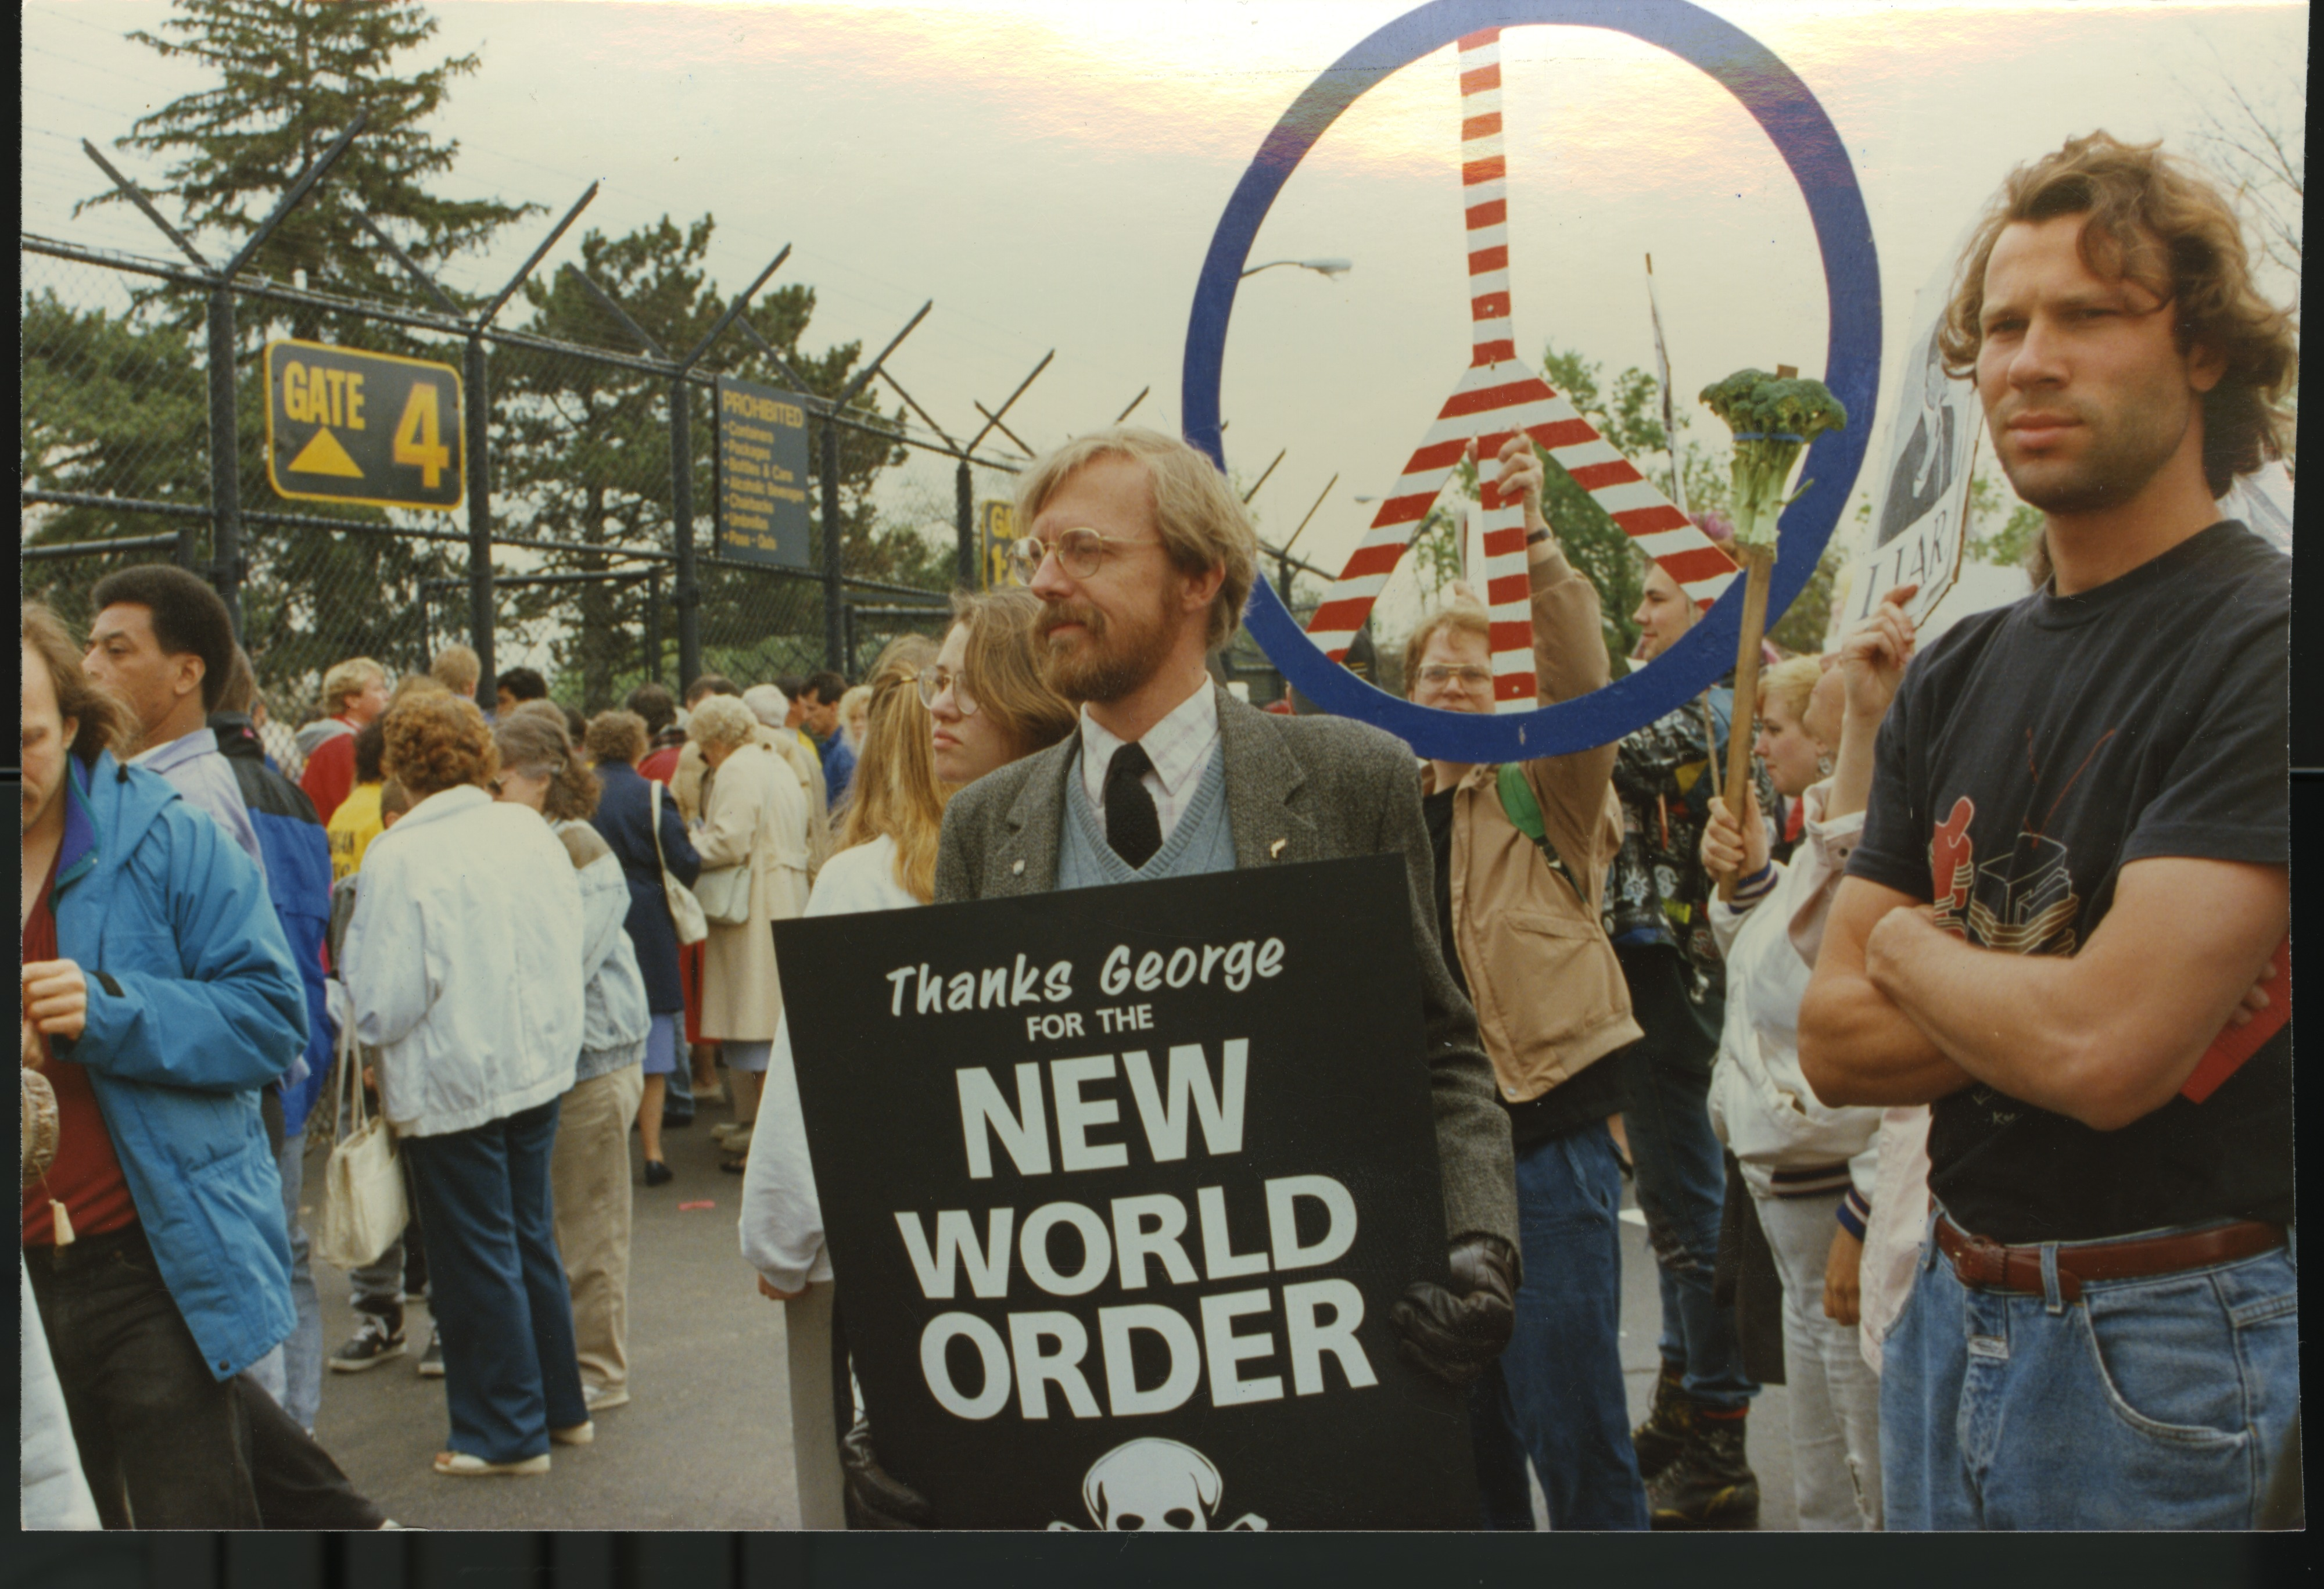 Interfaith Council for Peace and Justice: Protest of George Bush's Commencement Speech, 1991 image